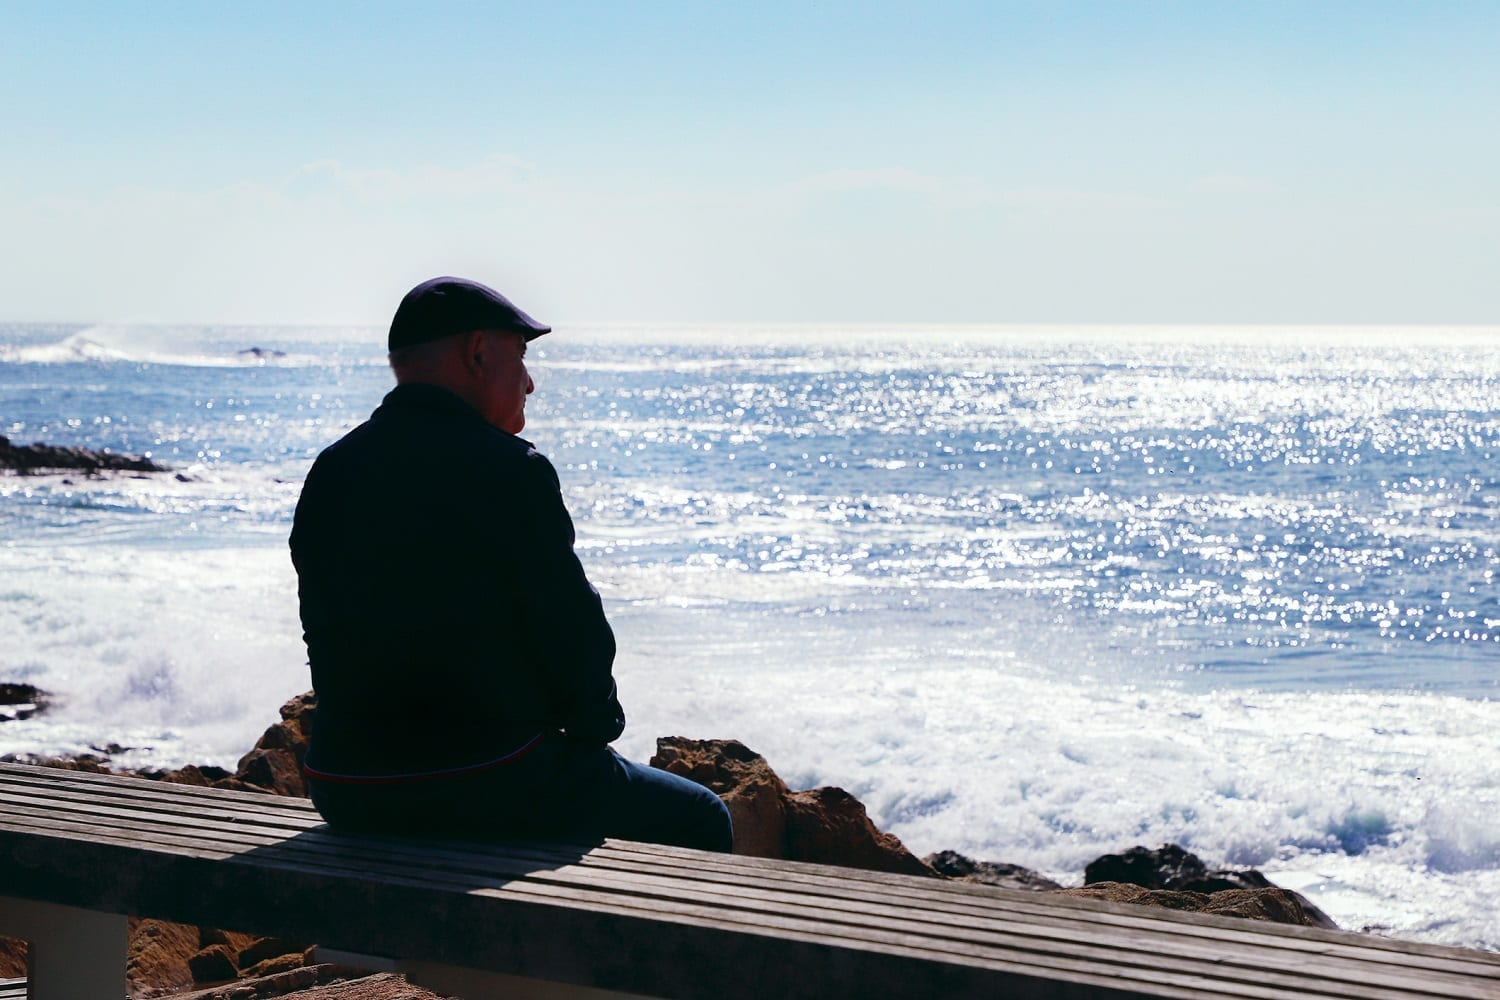 Old man sitting on a bench watching the ocean: ID 132930490 © Olena Klymenok | Dreamstime.com